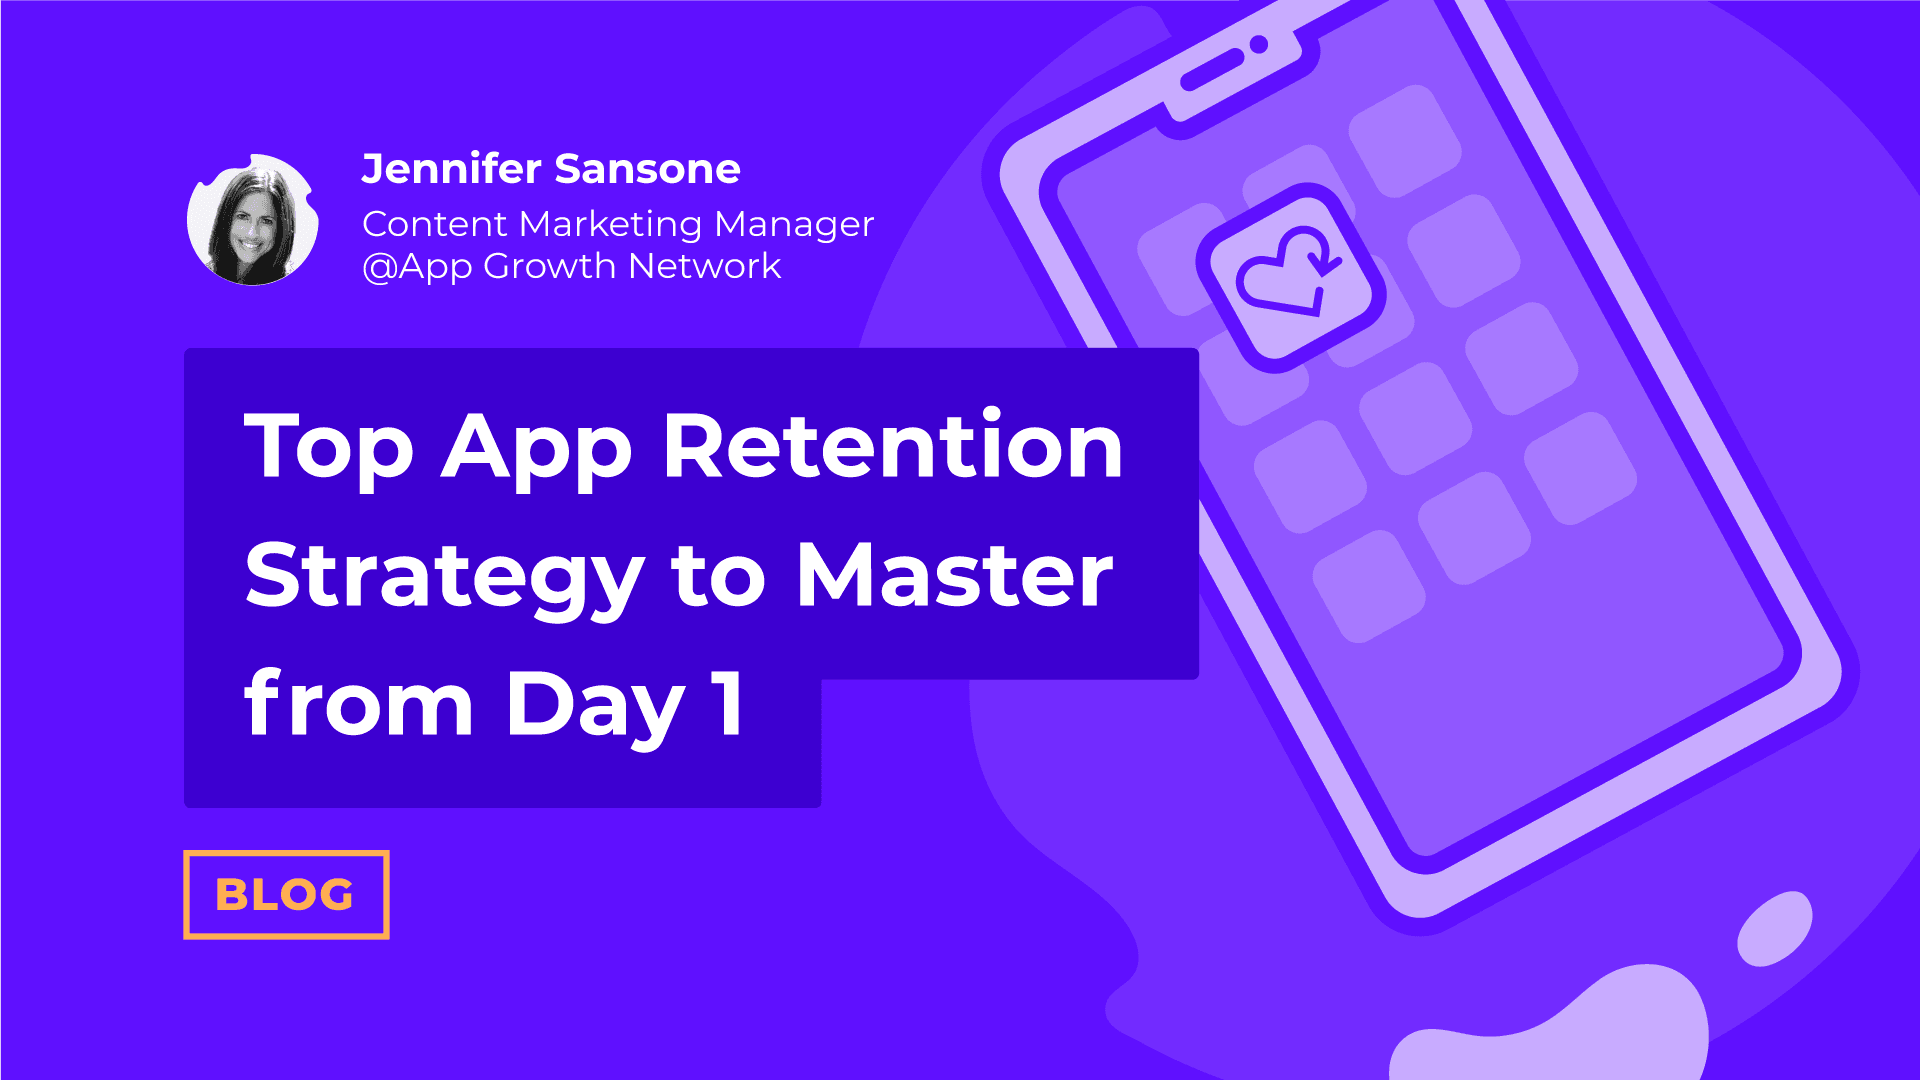 Top App Retention Strategy to Master from Day 1